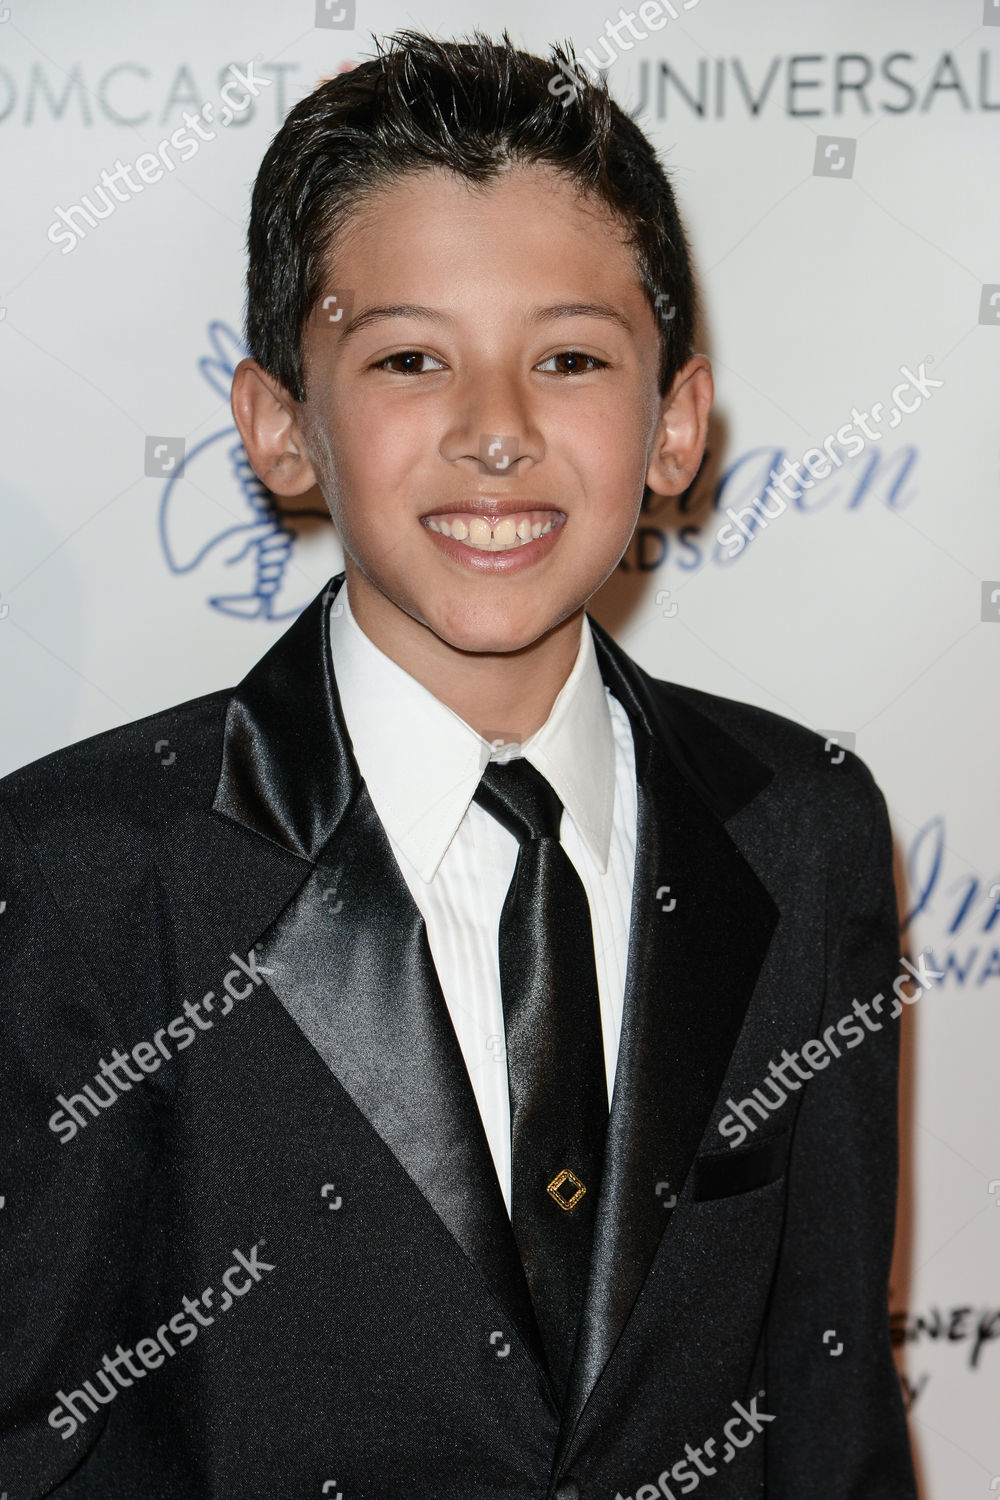 Stock photo of 28th Annual Imagen Awards held at the Beverly Hilton in Beverly Hills, Los Angeles, America - 16 Aug 2013